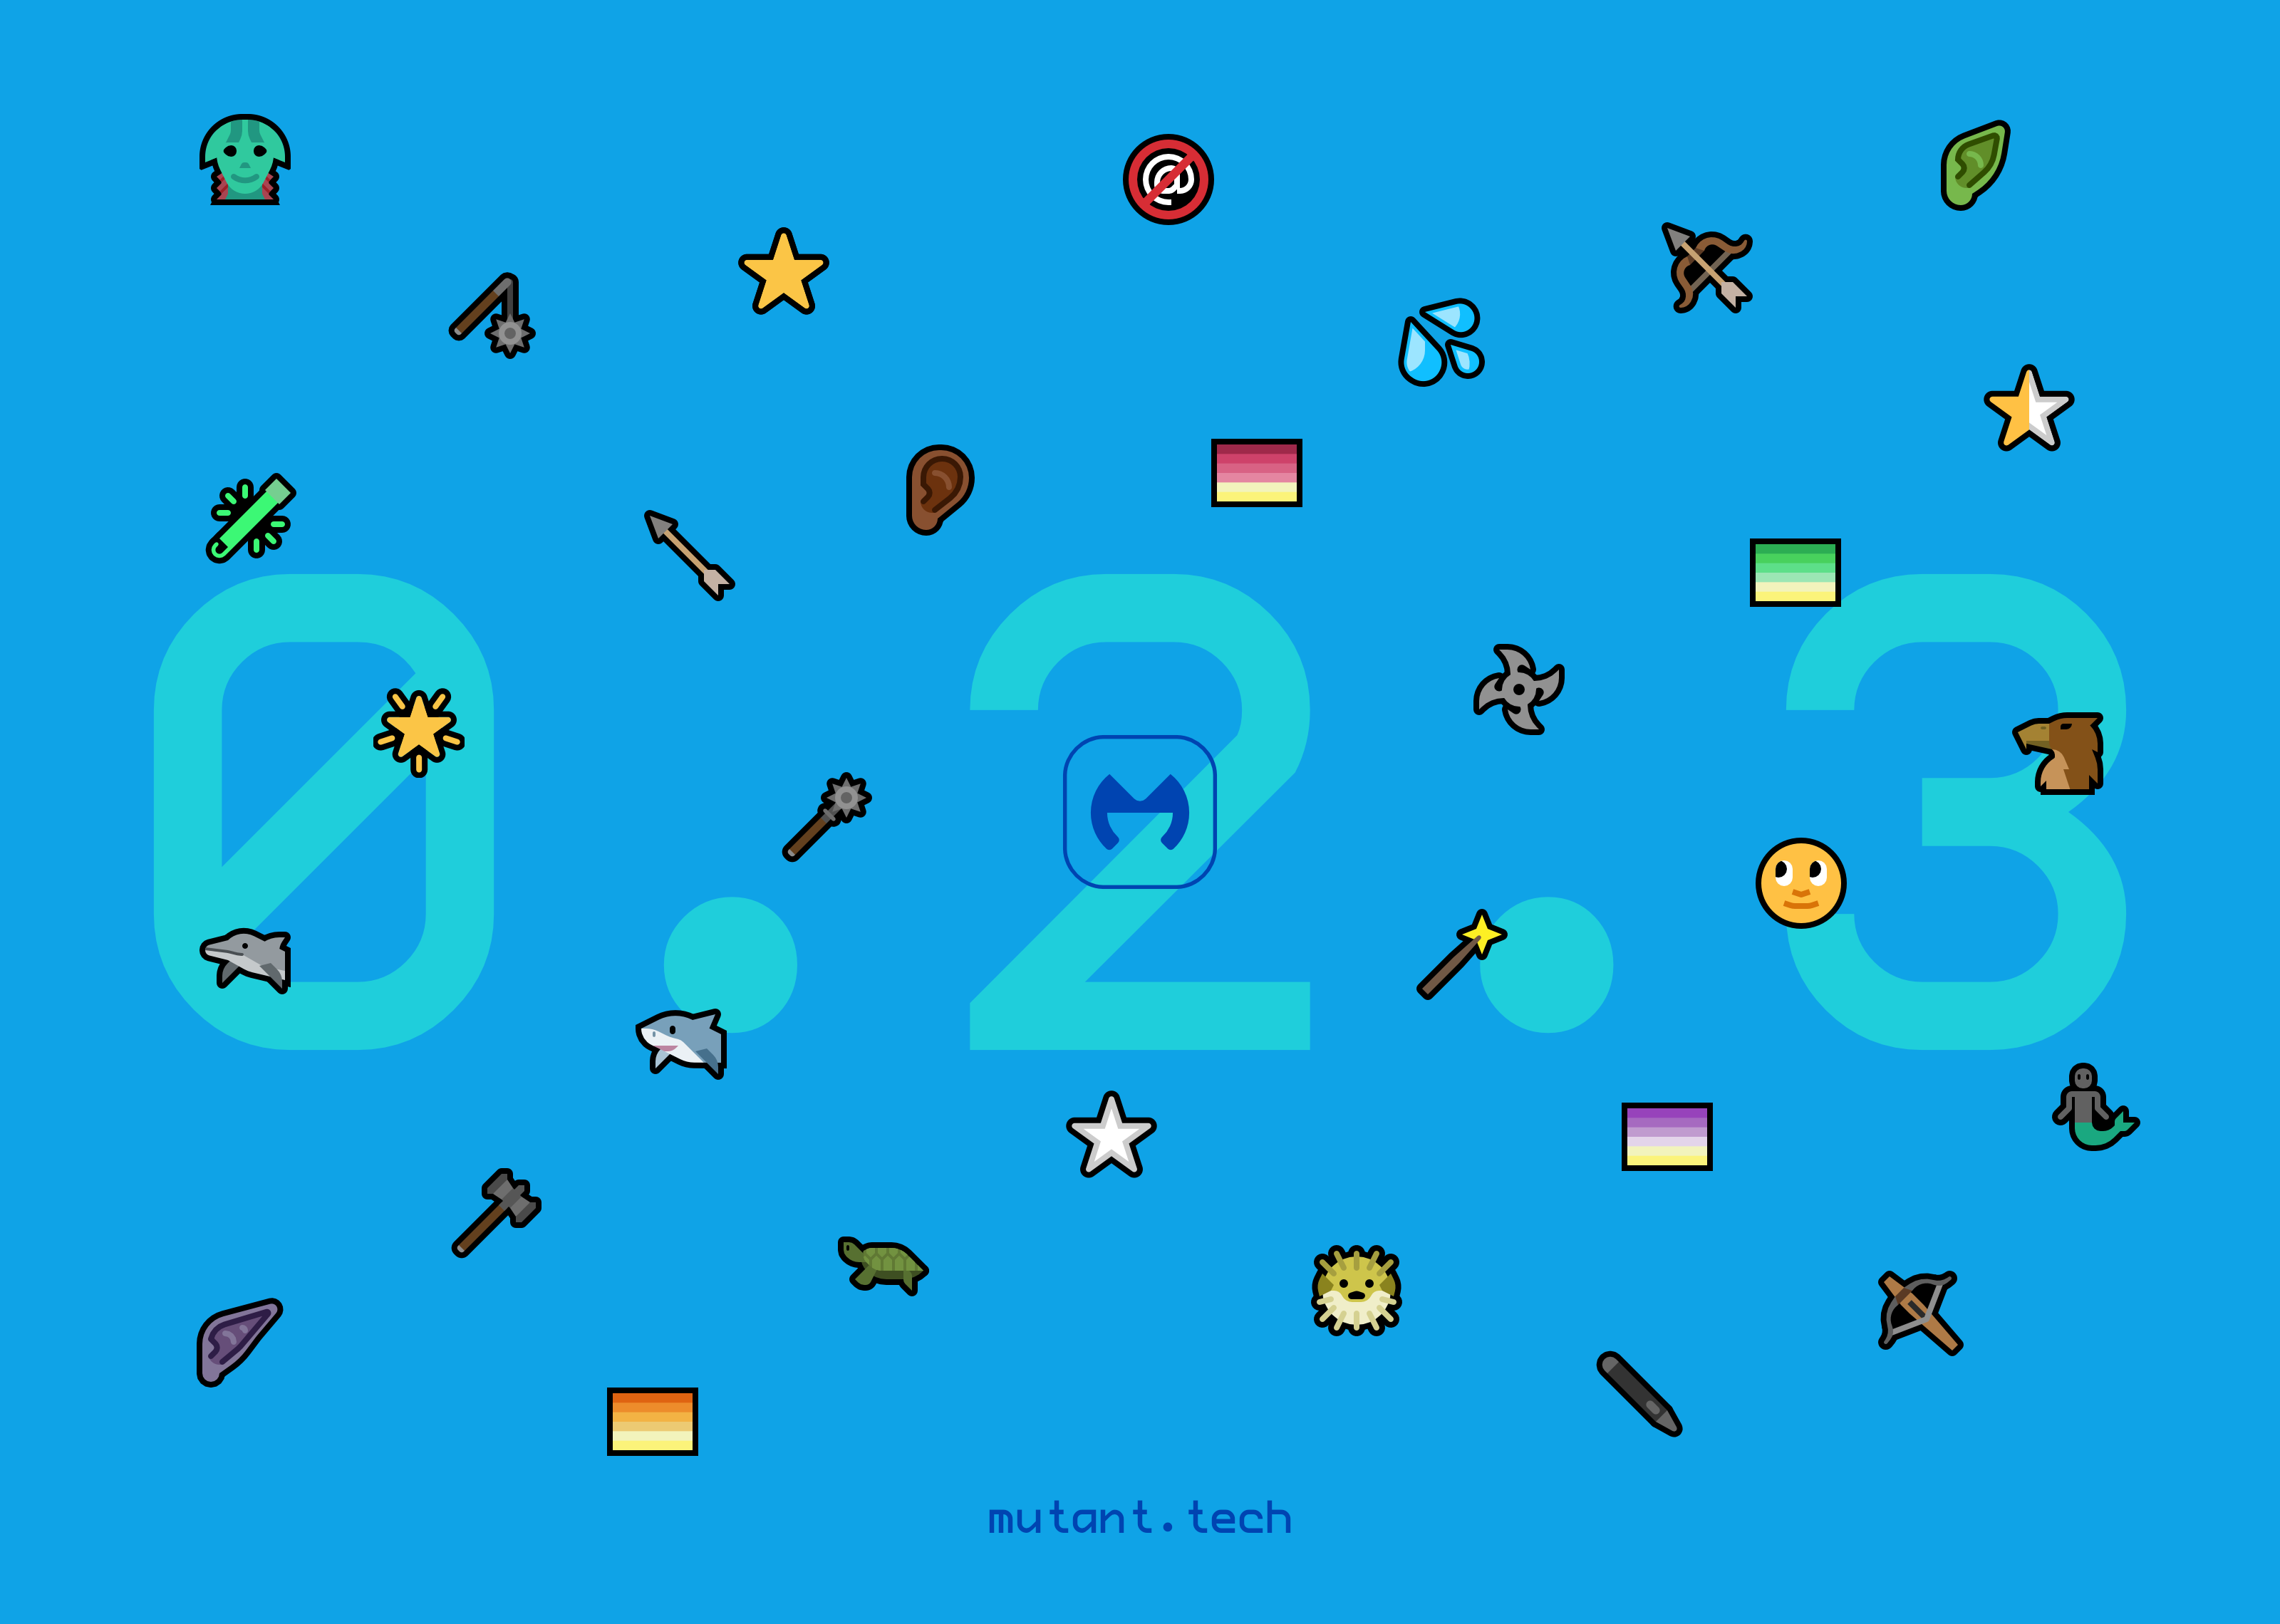 Promo image for Mutant Standard 0.2.3. All of the new emoji in 0.2.3 are scattered around the Mutant Standard logo in front of a bright blue background. Behind them is '0.2.3' in large light blue letters. The URL mutant.tech is on the center bottom in small dark blue text.